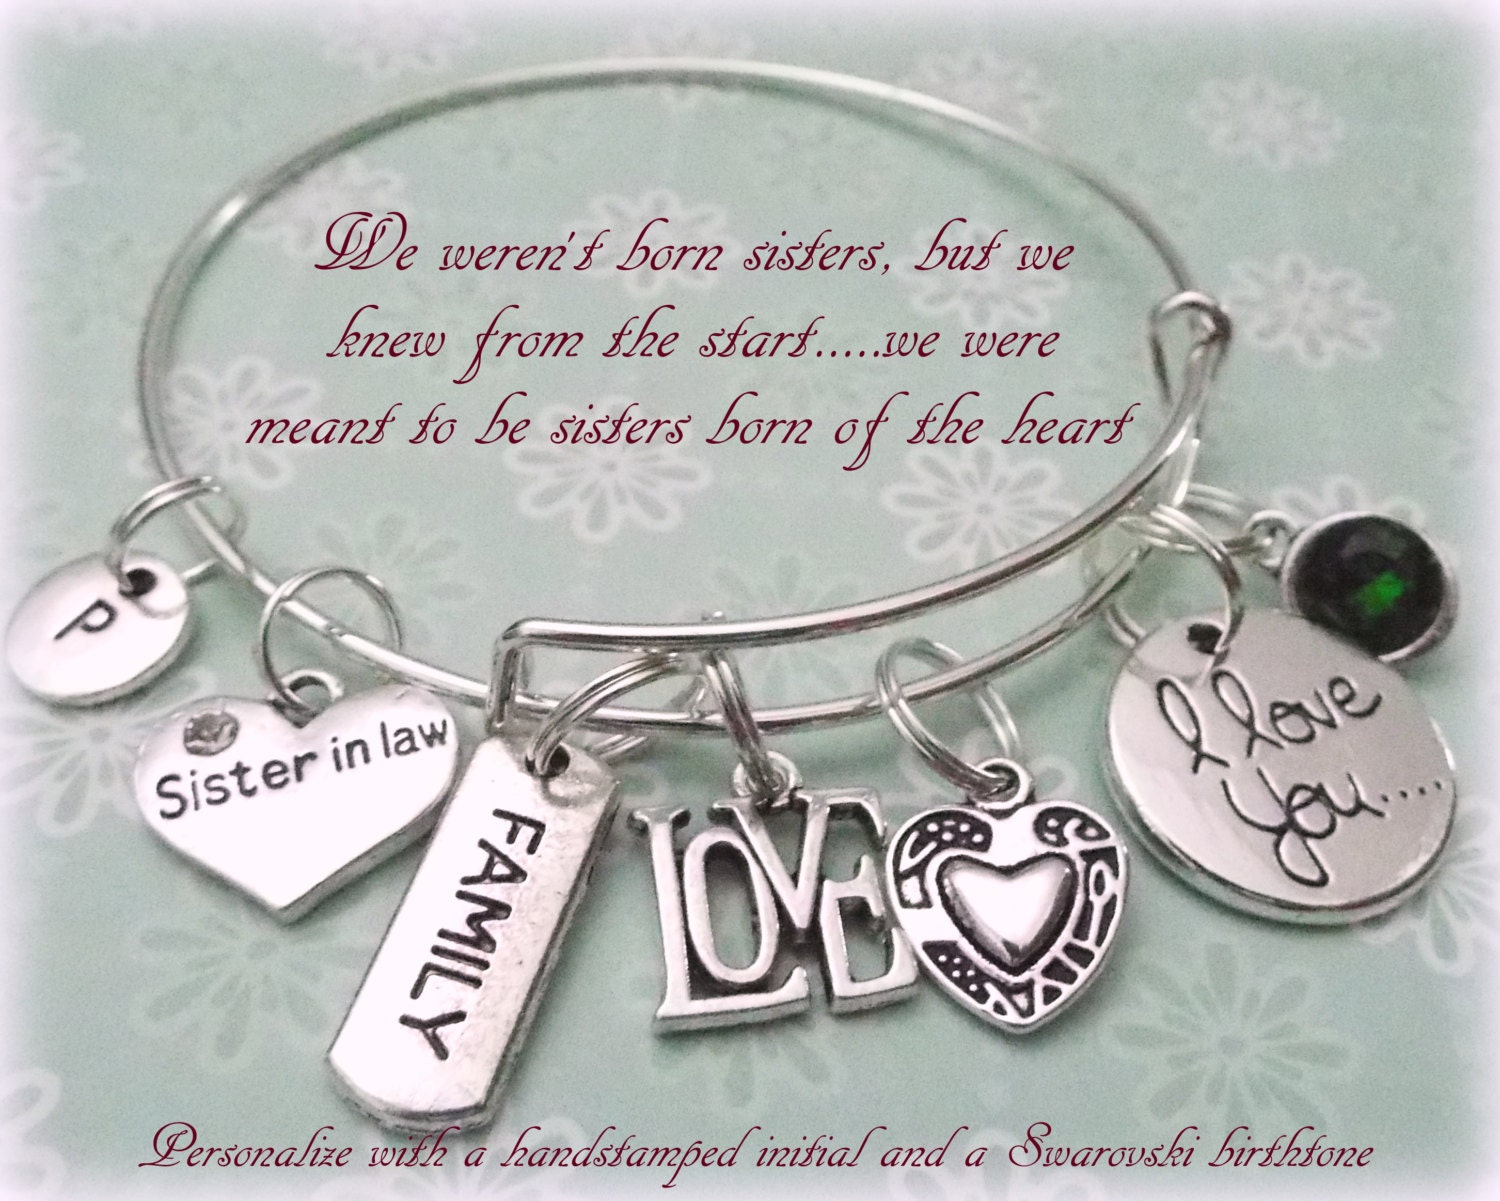 Perfect Wedding Gift For Sister: Sister In Law Charm Bracelet Gift For Sister In Law